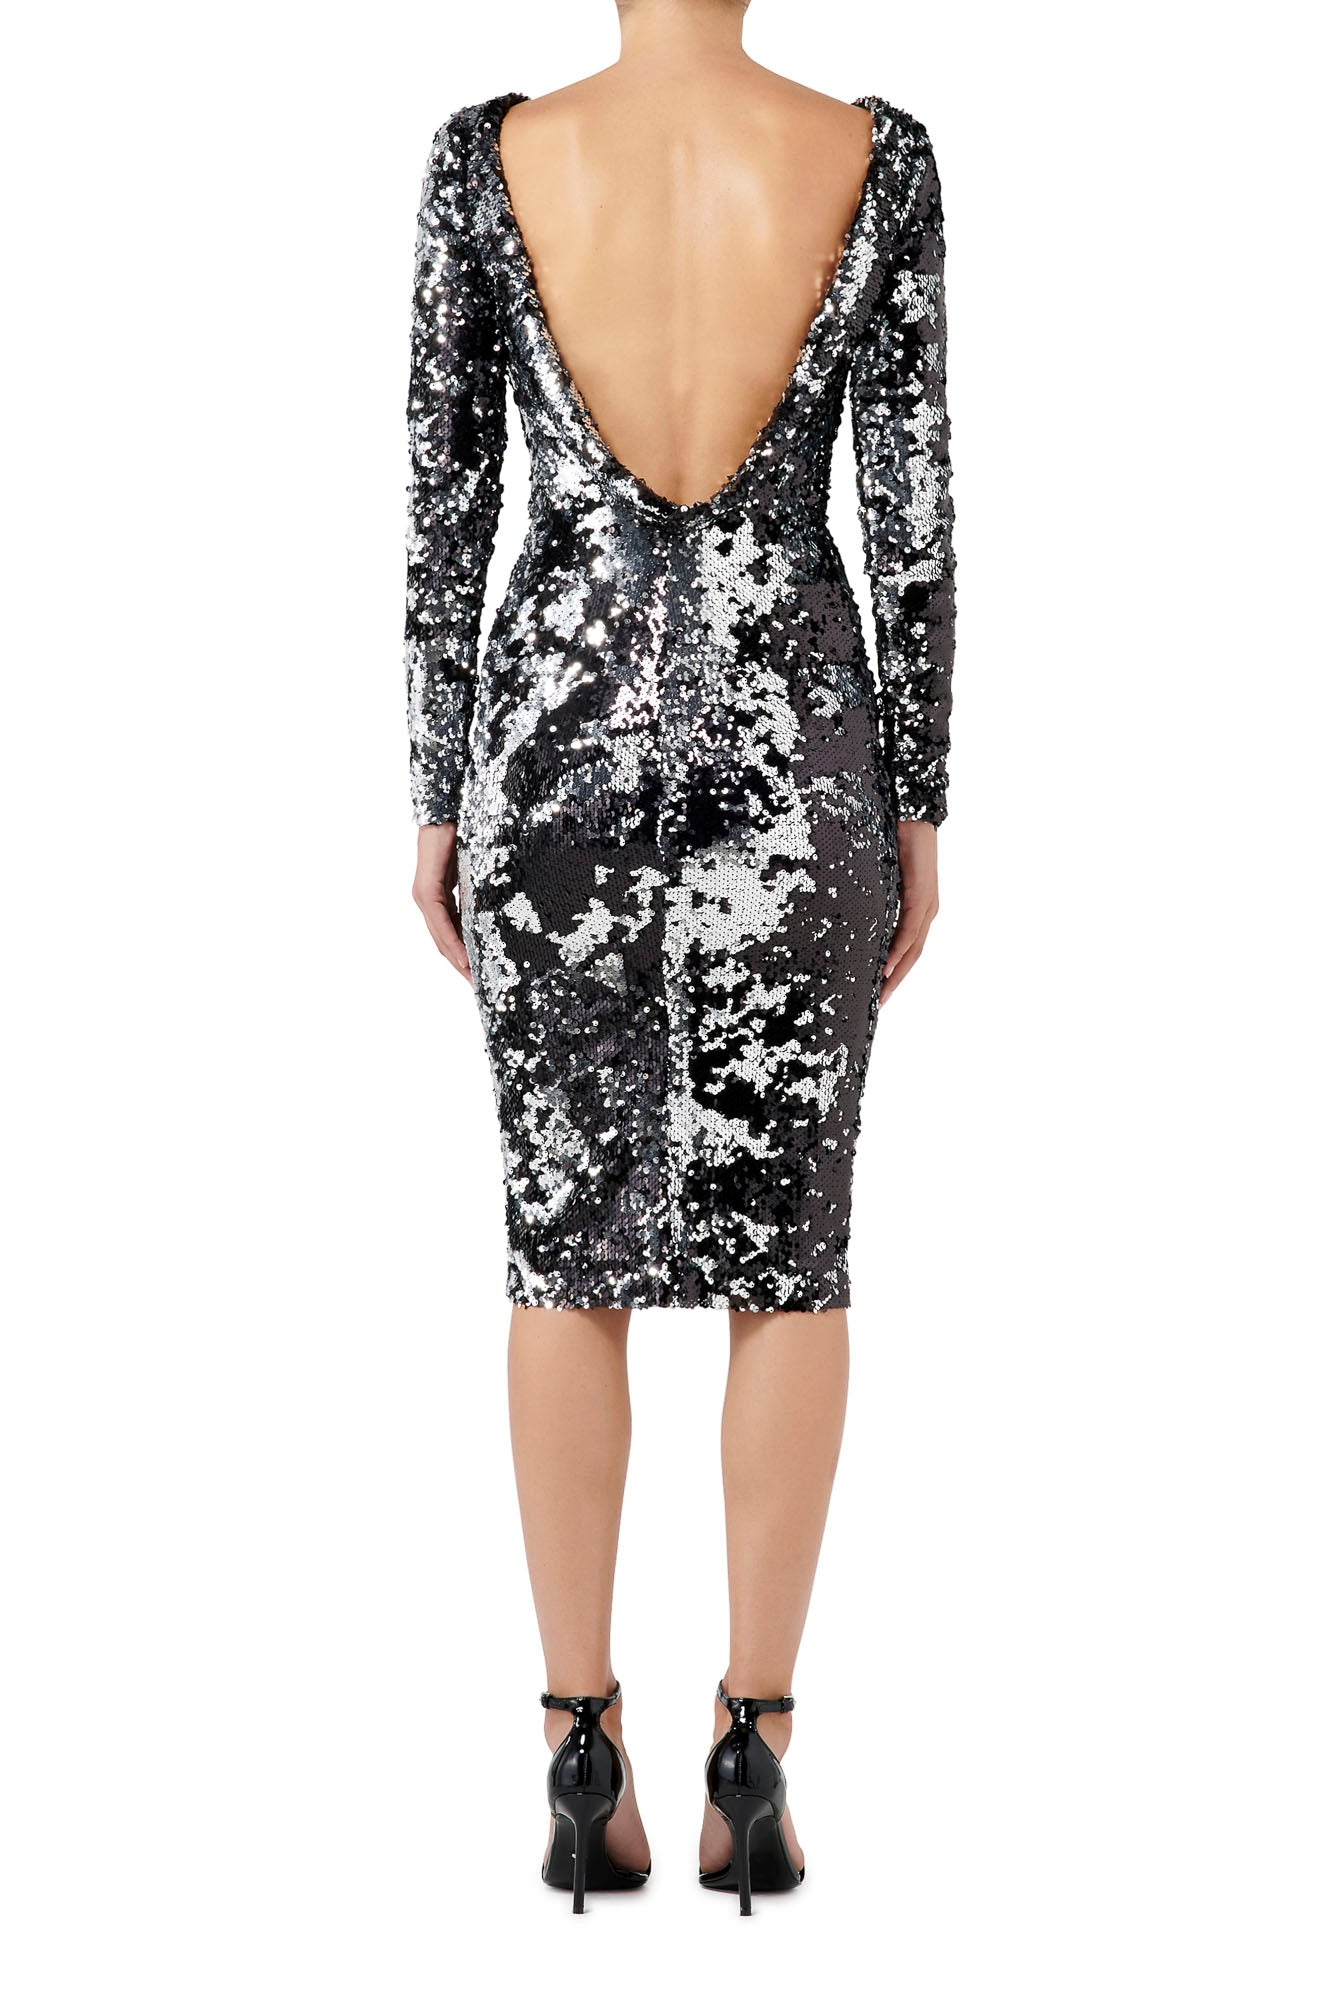 Fashion Rebellion Sequin Midi Dress - Silver